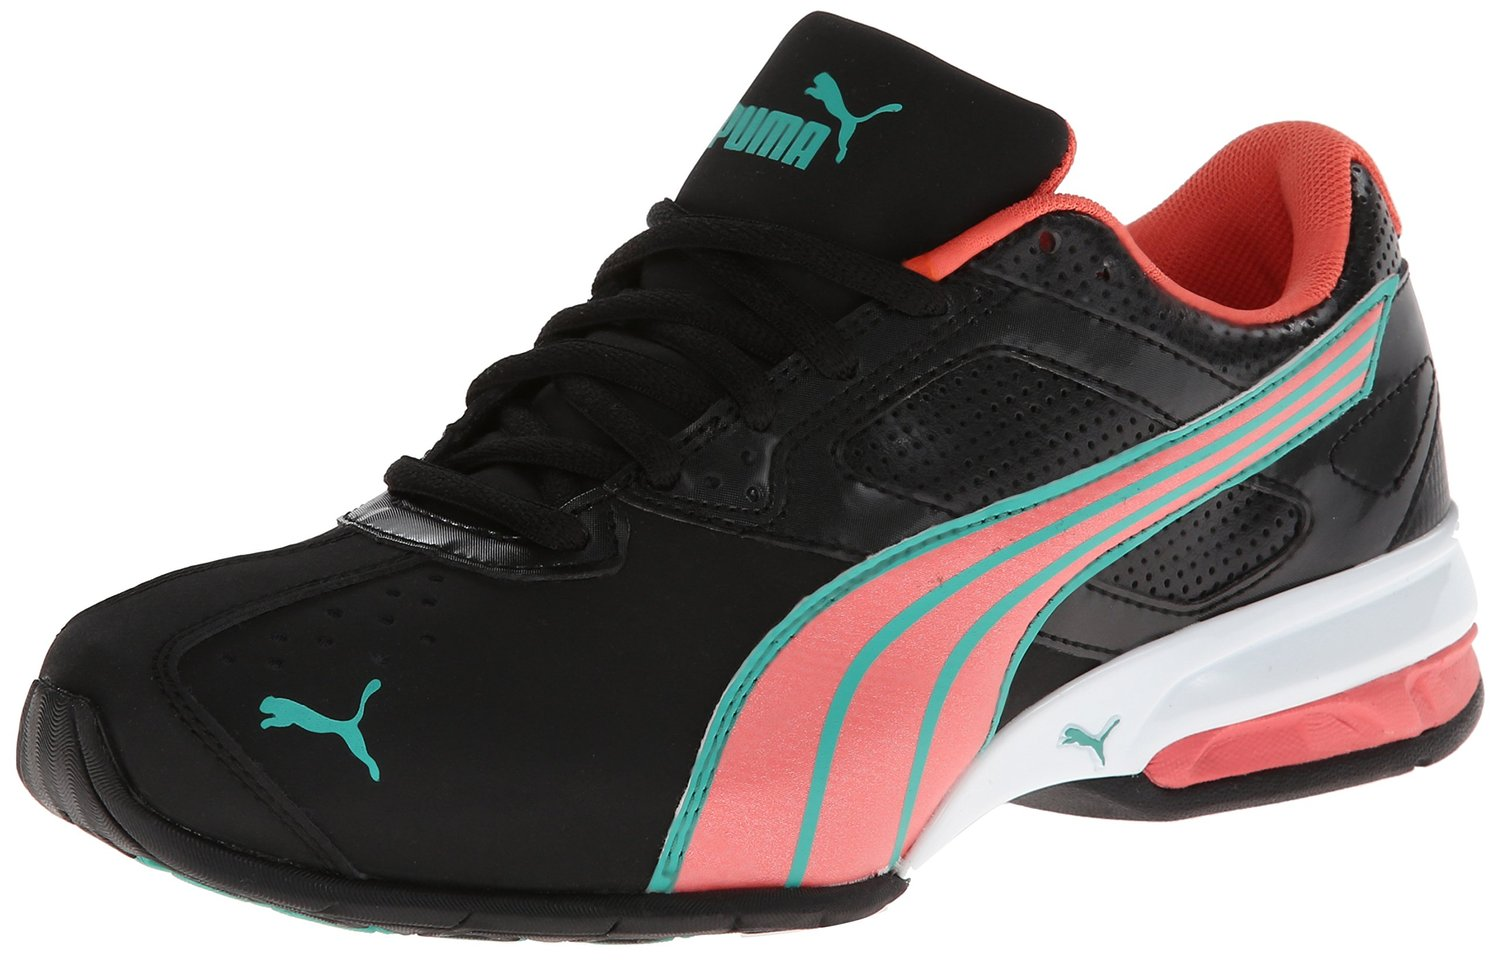 PUMA Tazon 5 Cross-Training Shoe BlackDubarryGreen a675e4d02